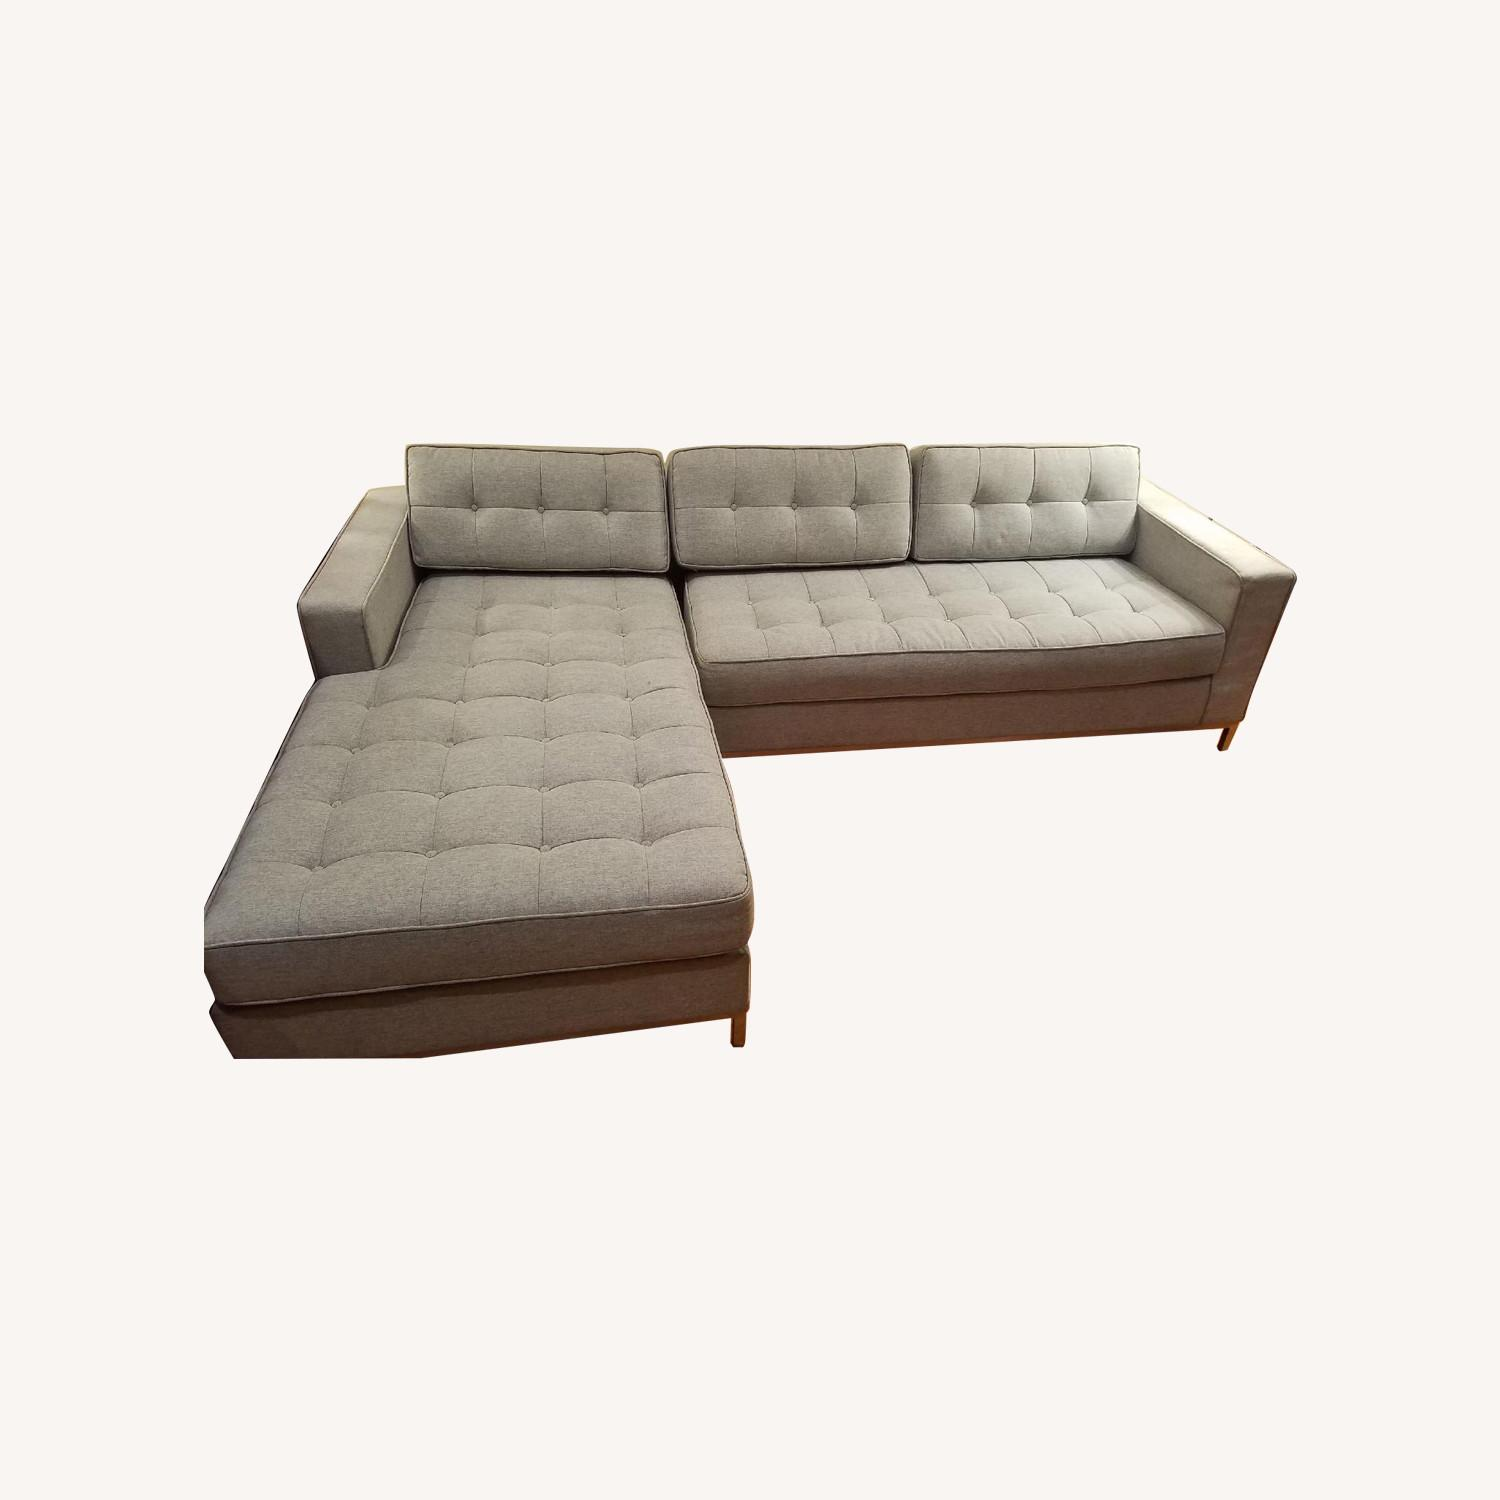 Excellent Gus Modern Jane Bi Sectional Sofa Aptdeco Ibusinesslaw Wood Chair Design Ideas Ibusinesslaworg